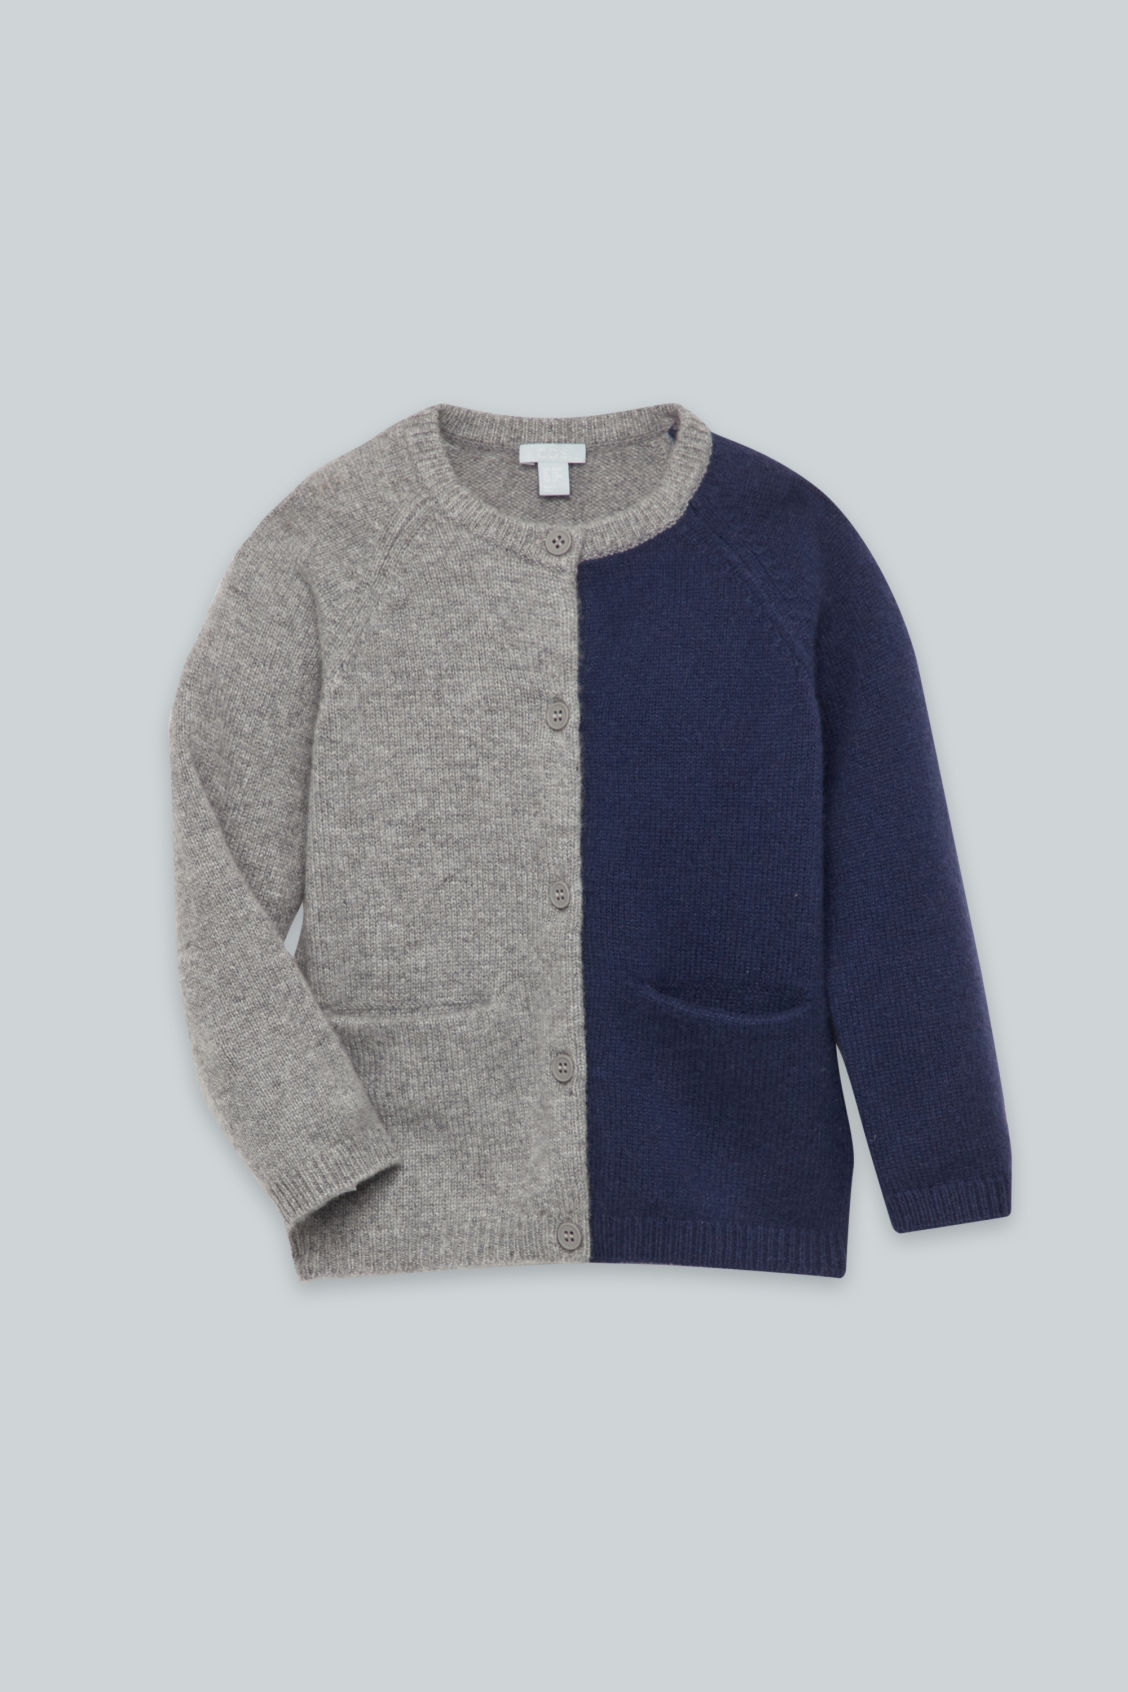 Detailed image of Cos cashmere cardigan in grey